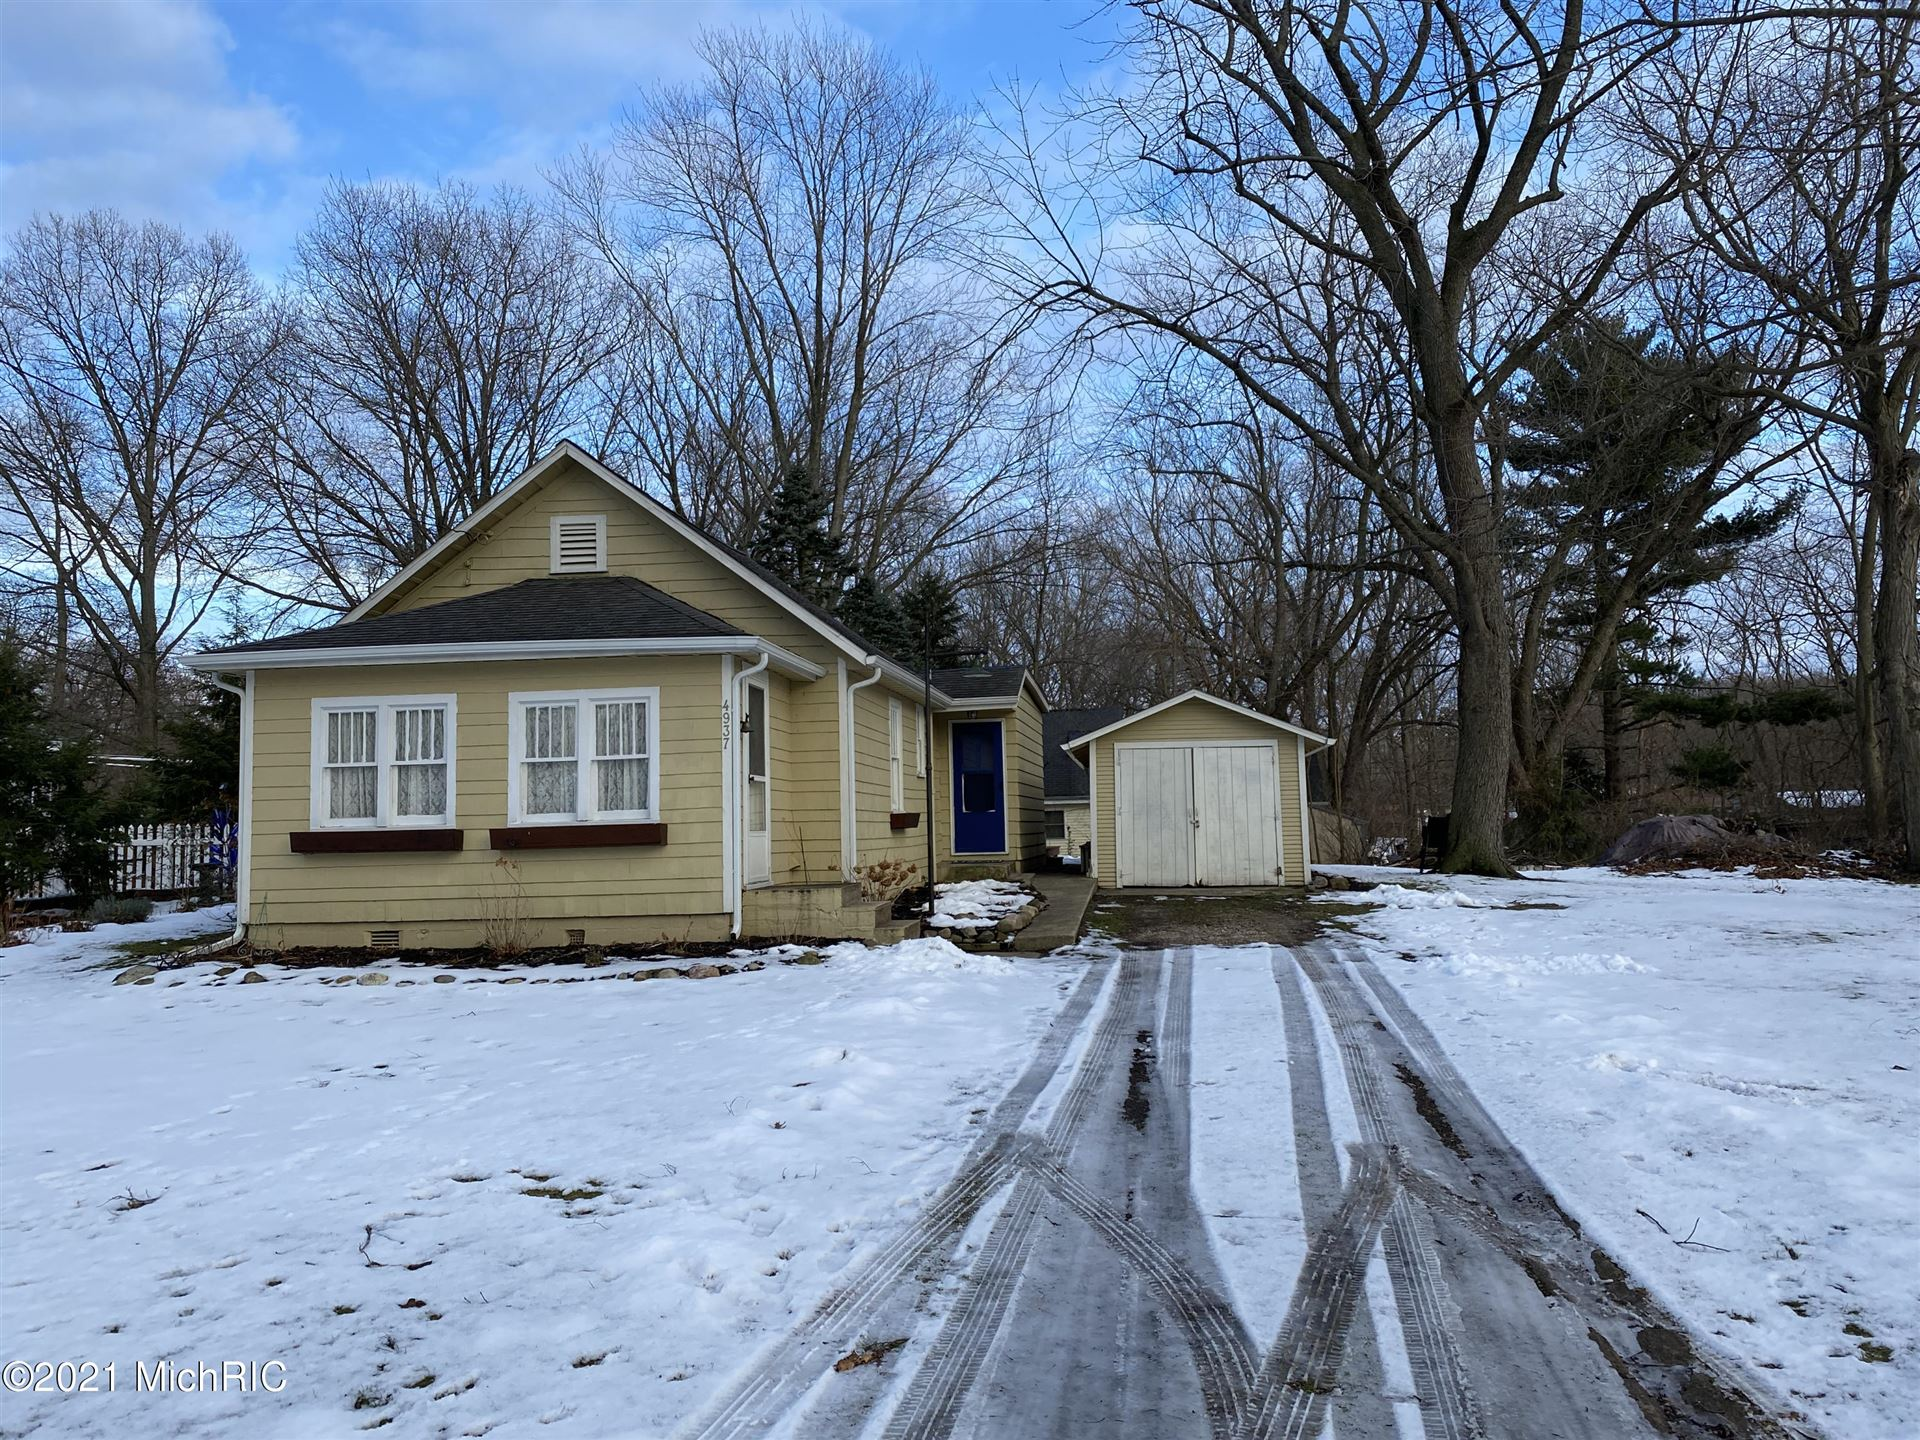 4937 Michigan Path, Stevensville, MI 49127 - MLS#: 21000516